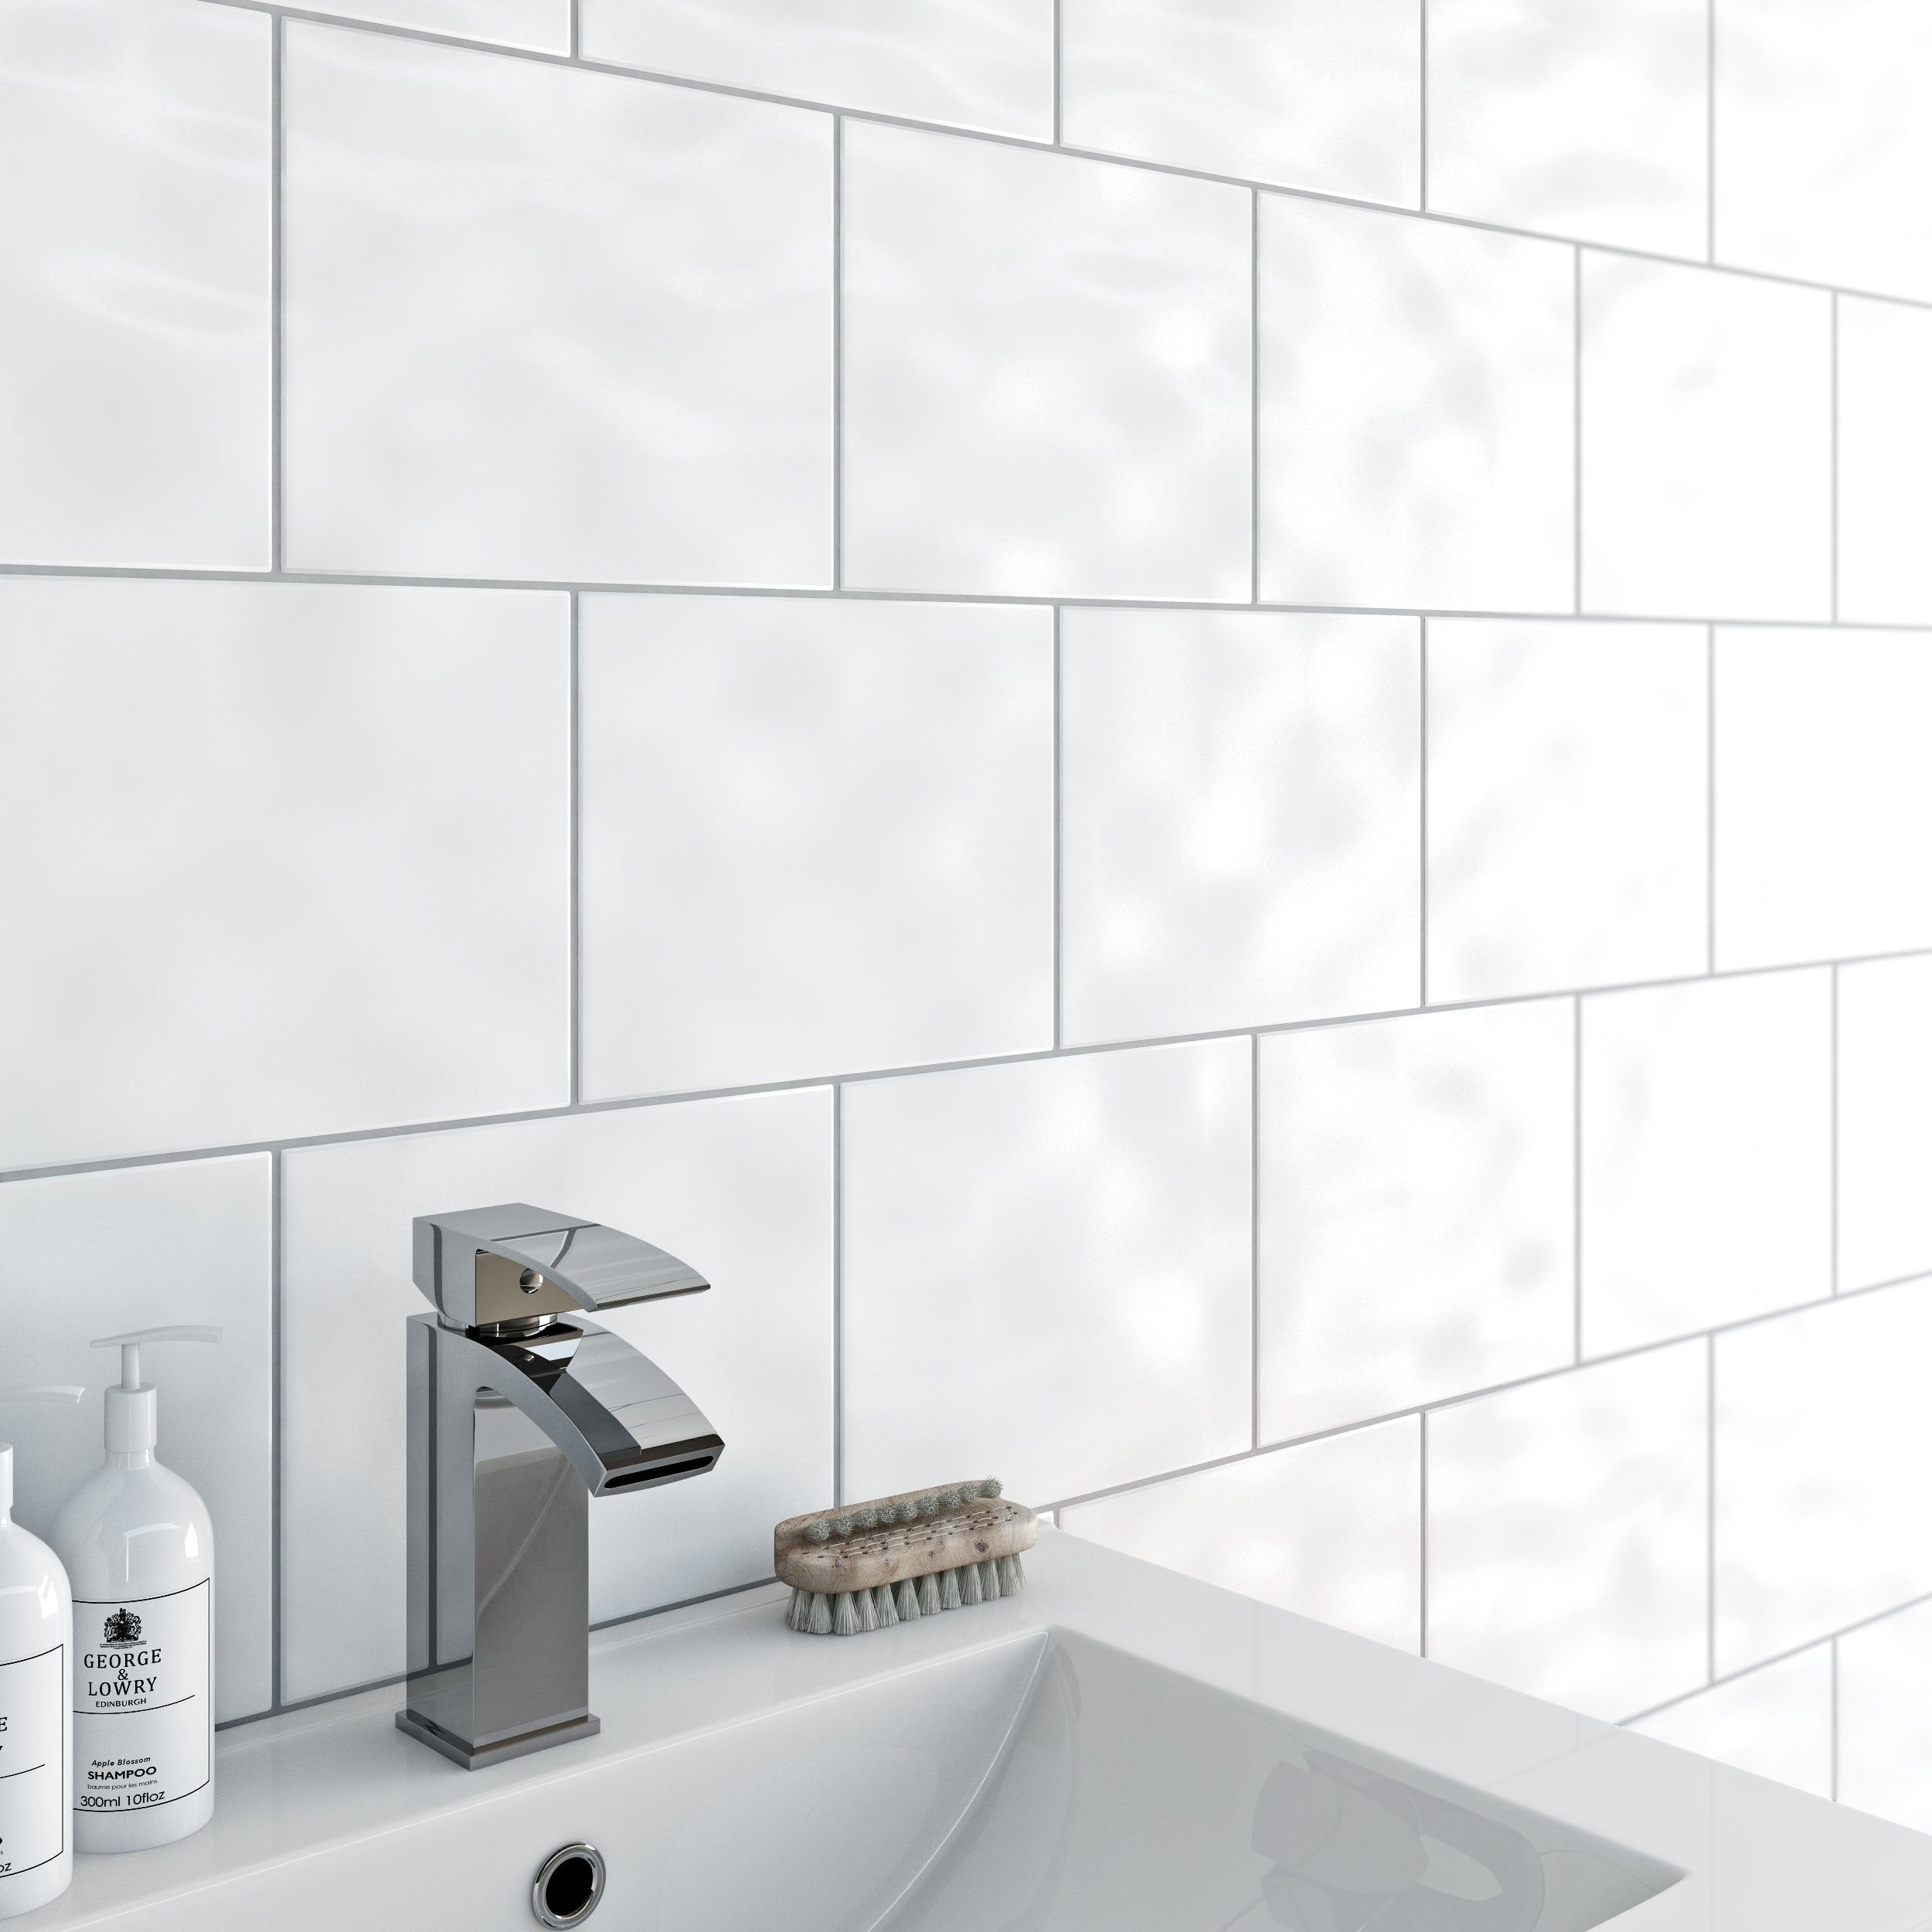 Clarity Bumpy White Gloss Tile 200mm X 250mm White Wall Tiles Bathroom Wall Tile White Bathroom Tiles